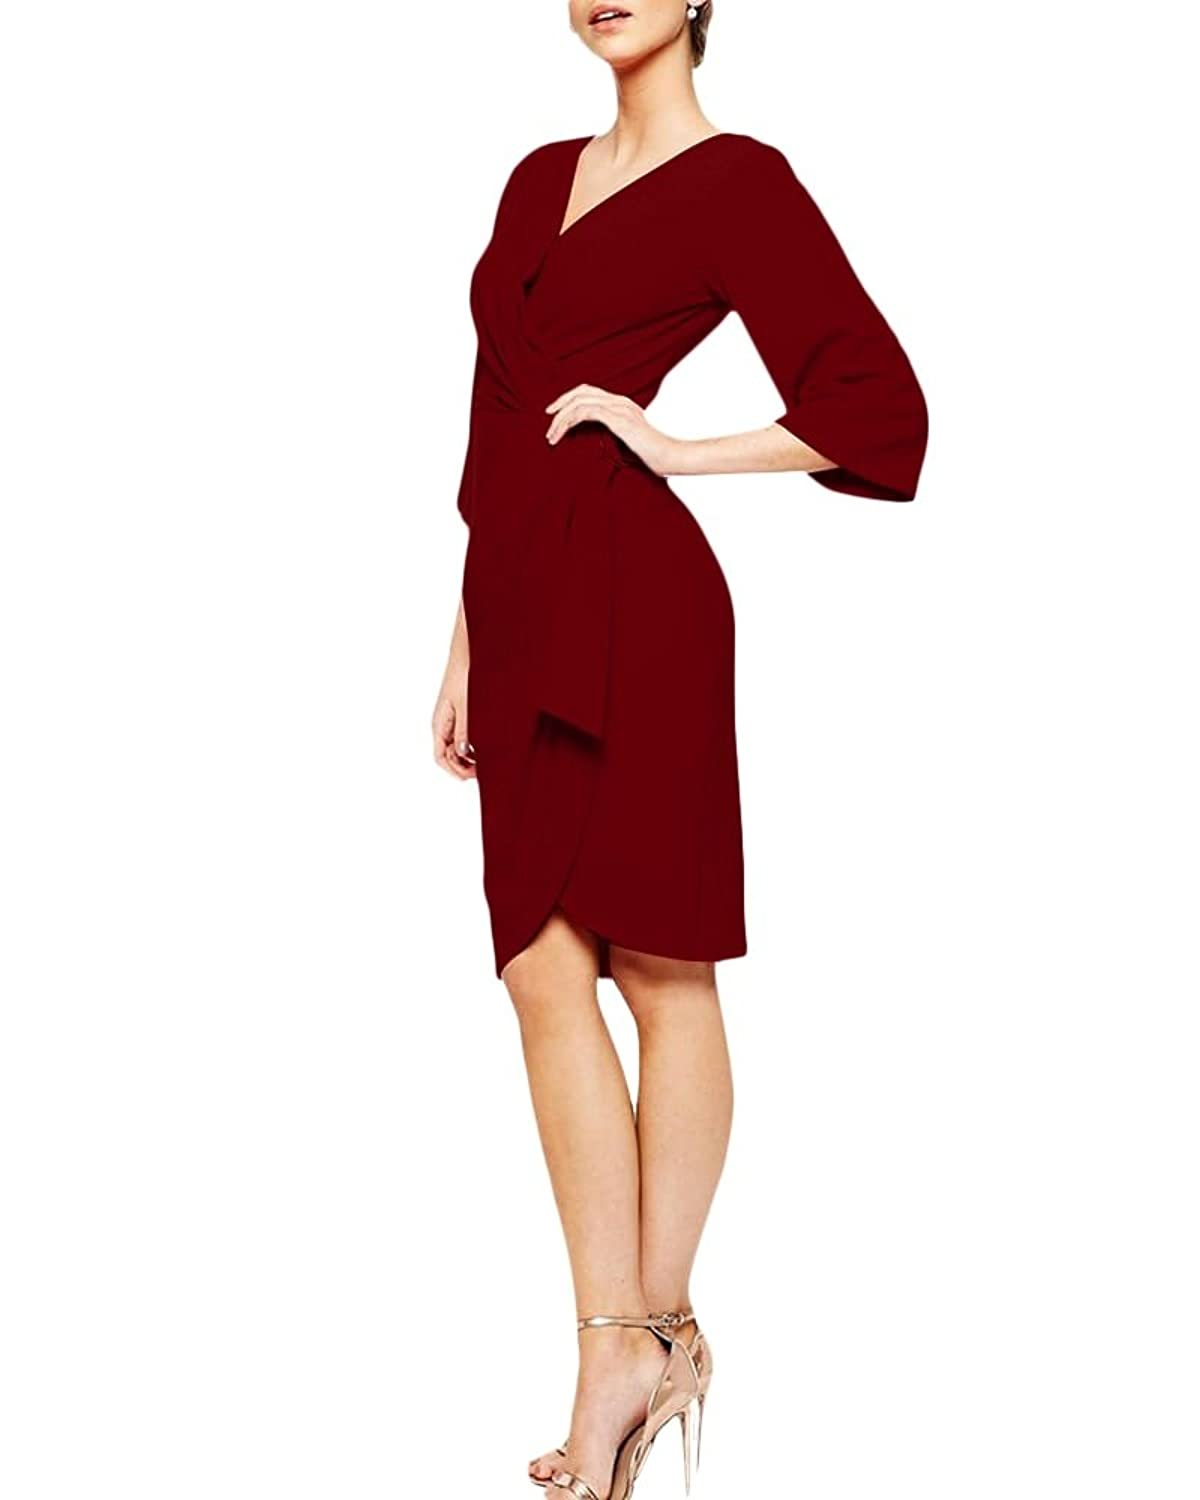 LoveURAPpearance Women's Rosy Midi Wrap Dress - Regular and Plus Size